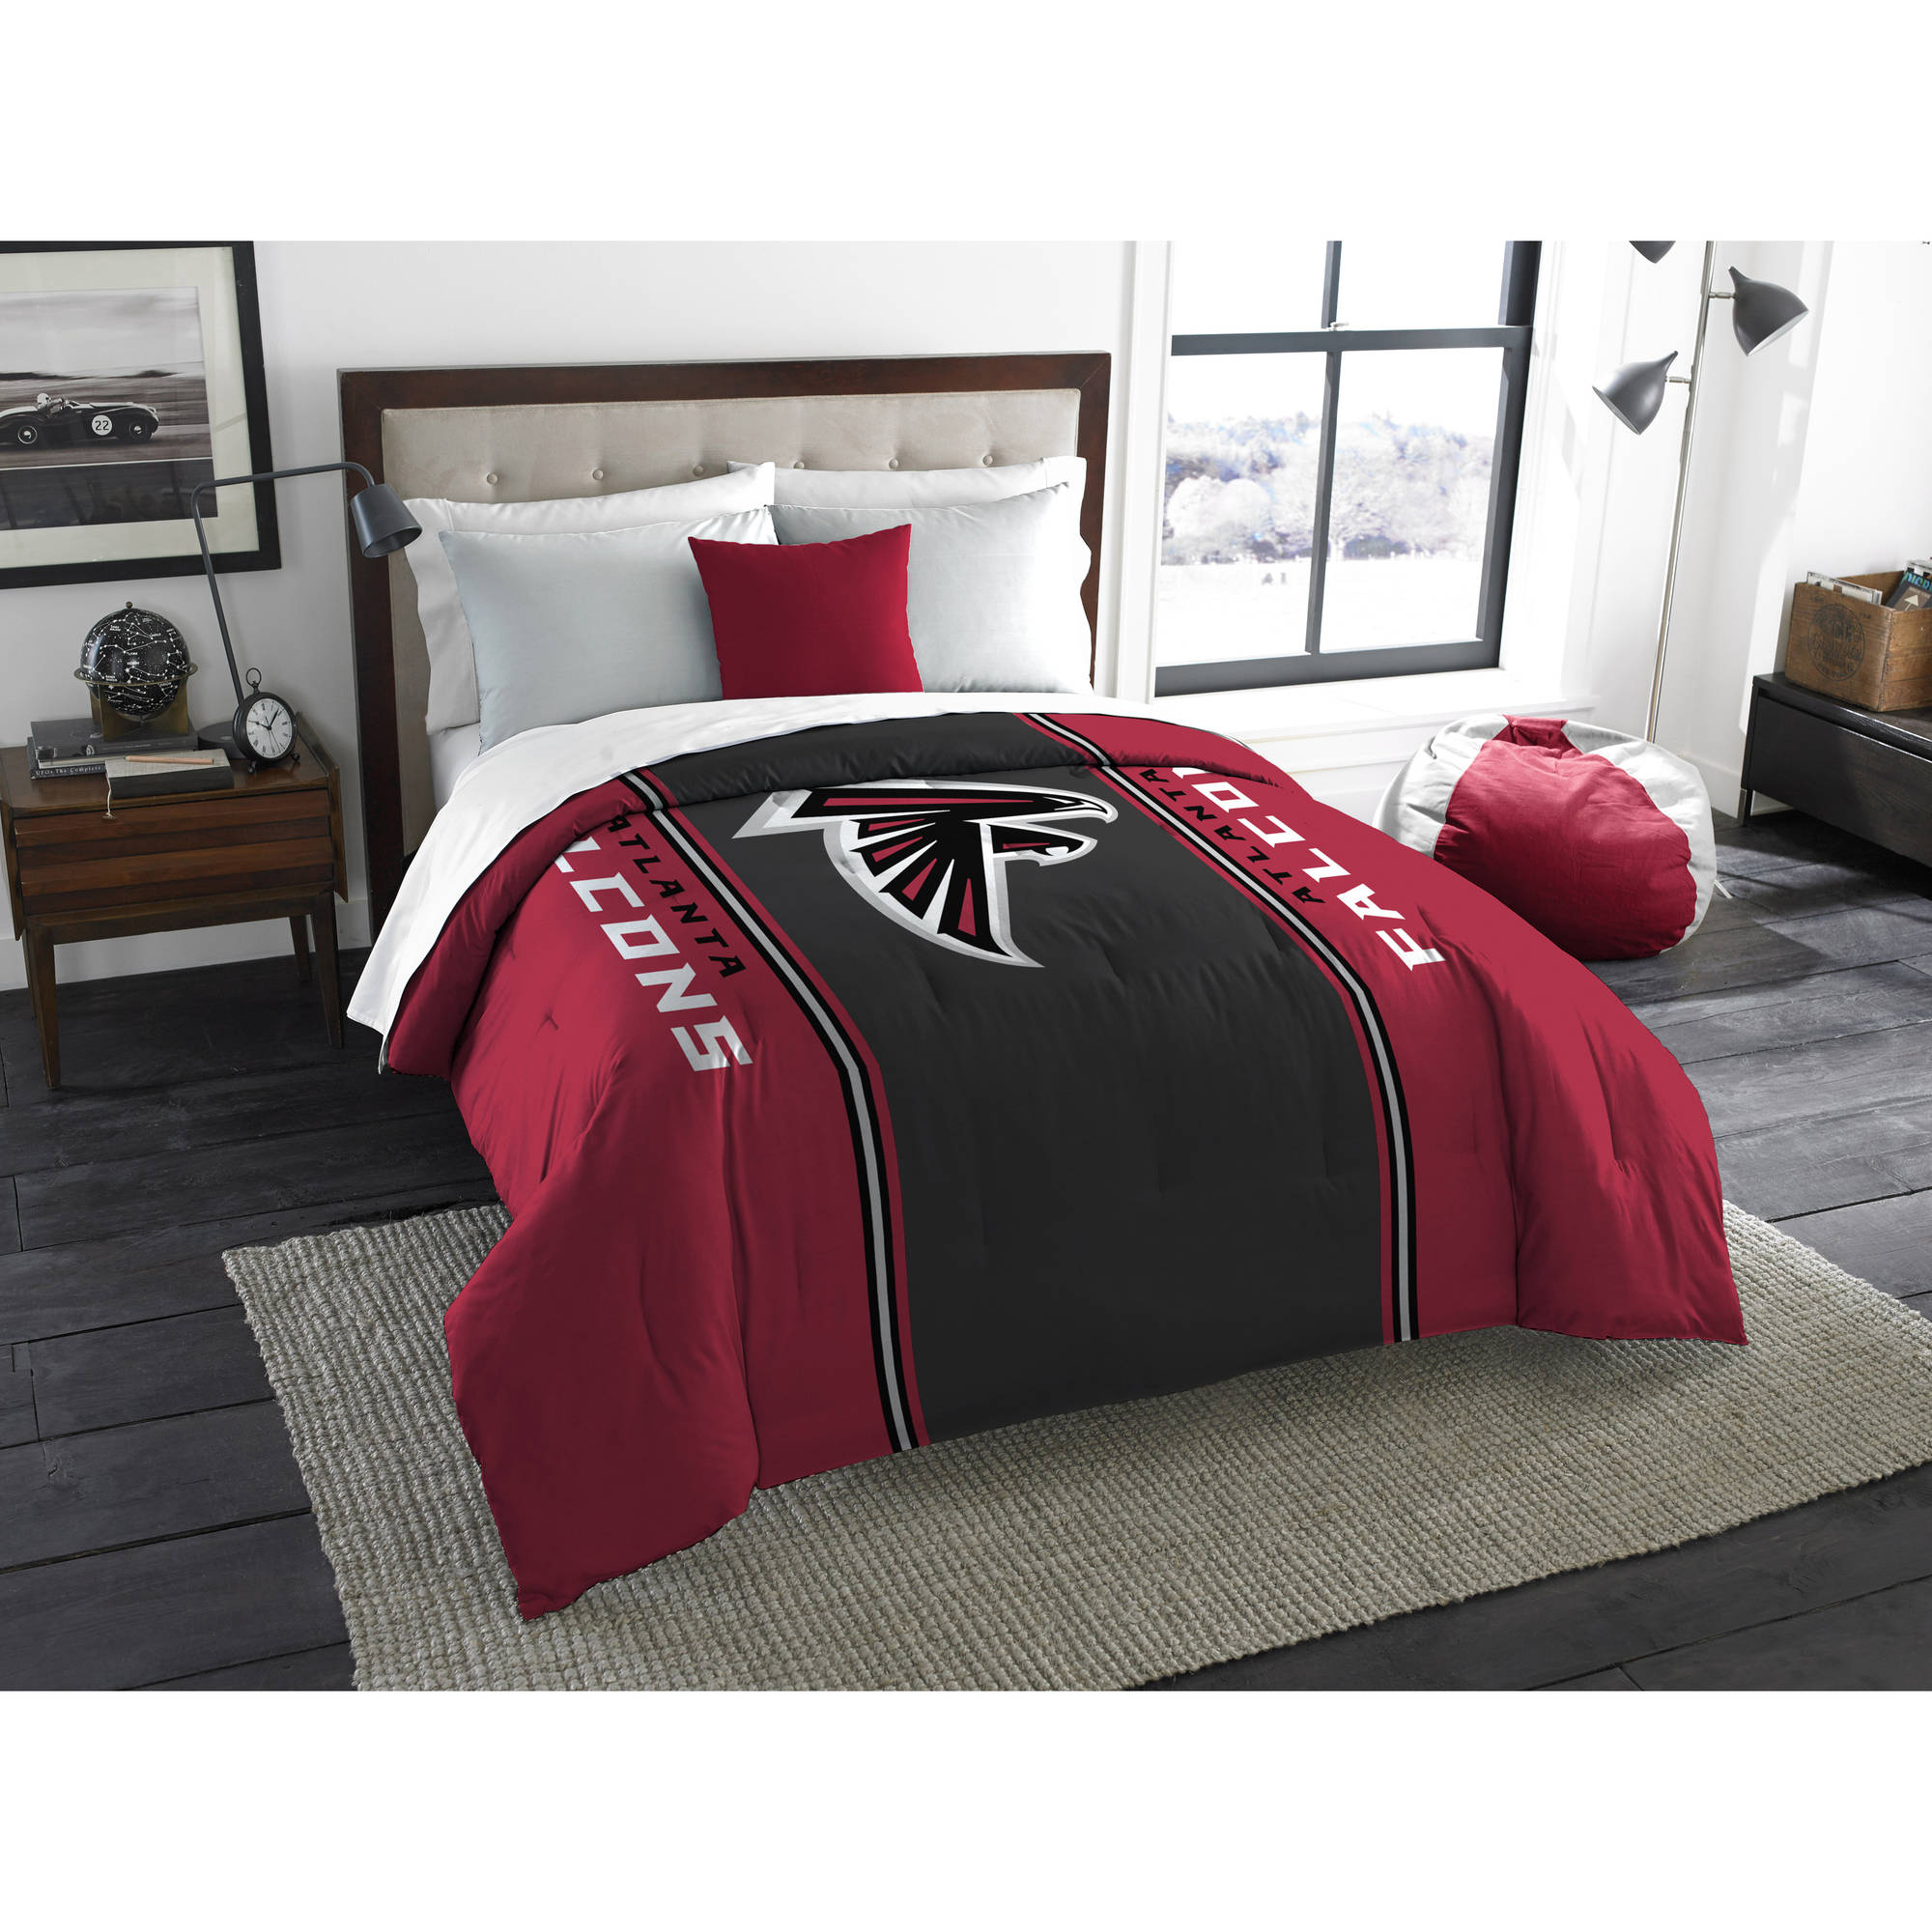 "NFL Atlanta Falcons ""Mascot"" Twin/Full Bedding Comforter"